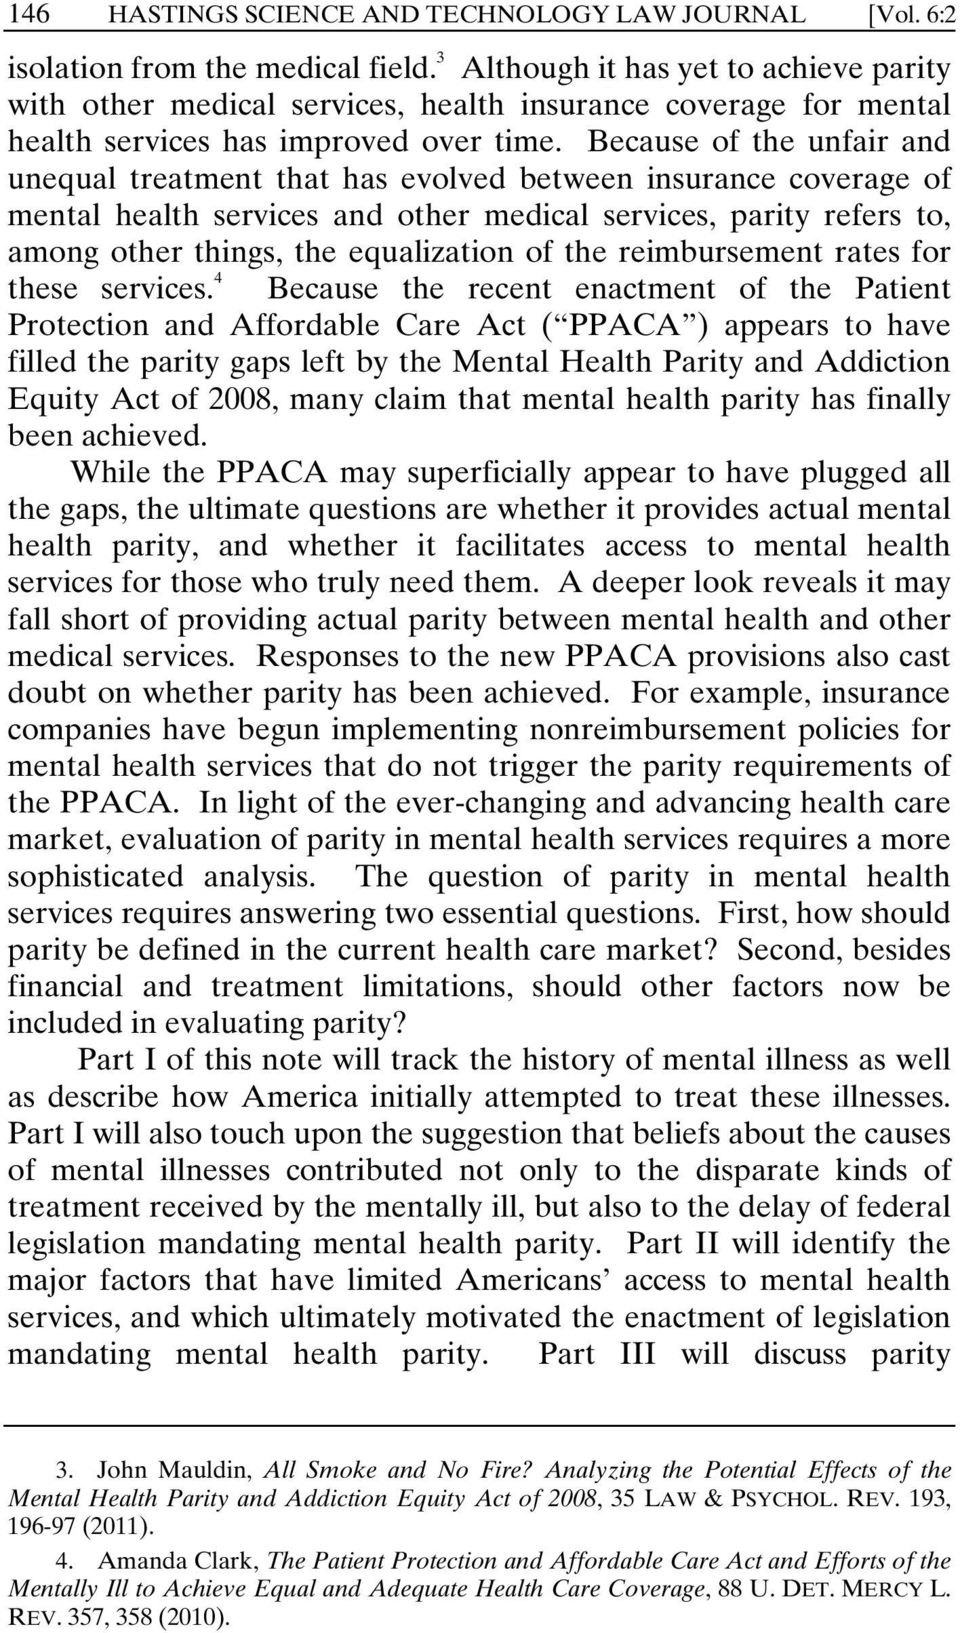 Because of the unfair and unequal treatment that has evolved between insurance coverage of mental health services and other medical services, parity refers to, among other things, the equalization of